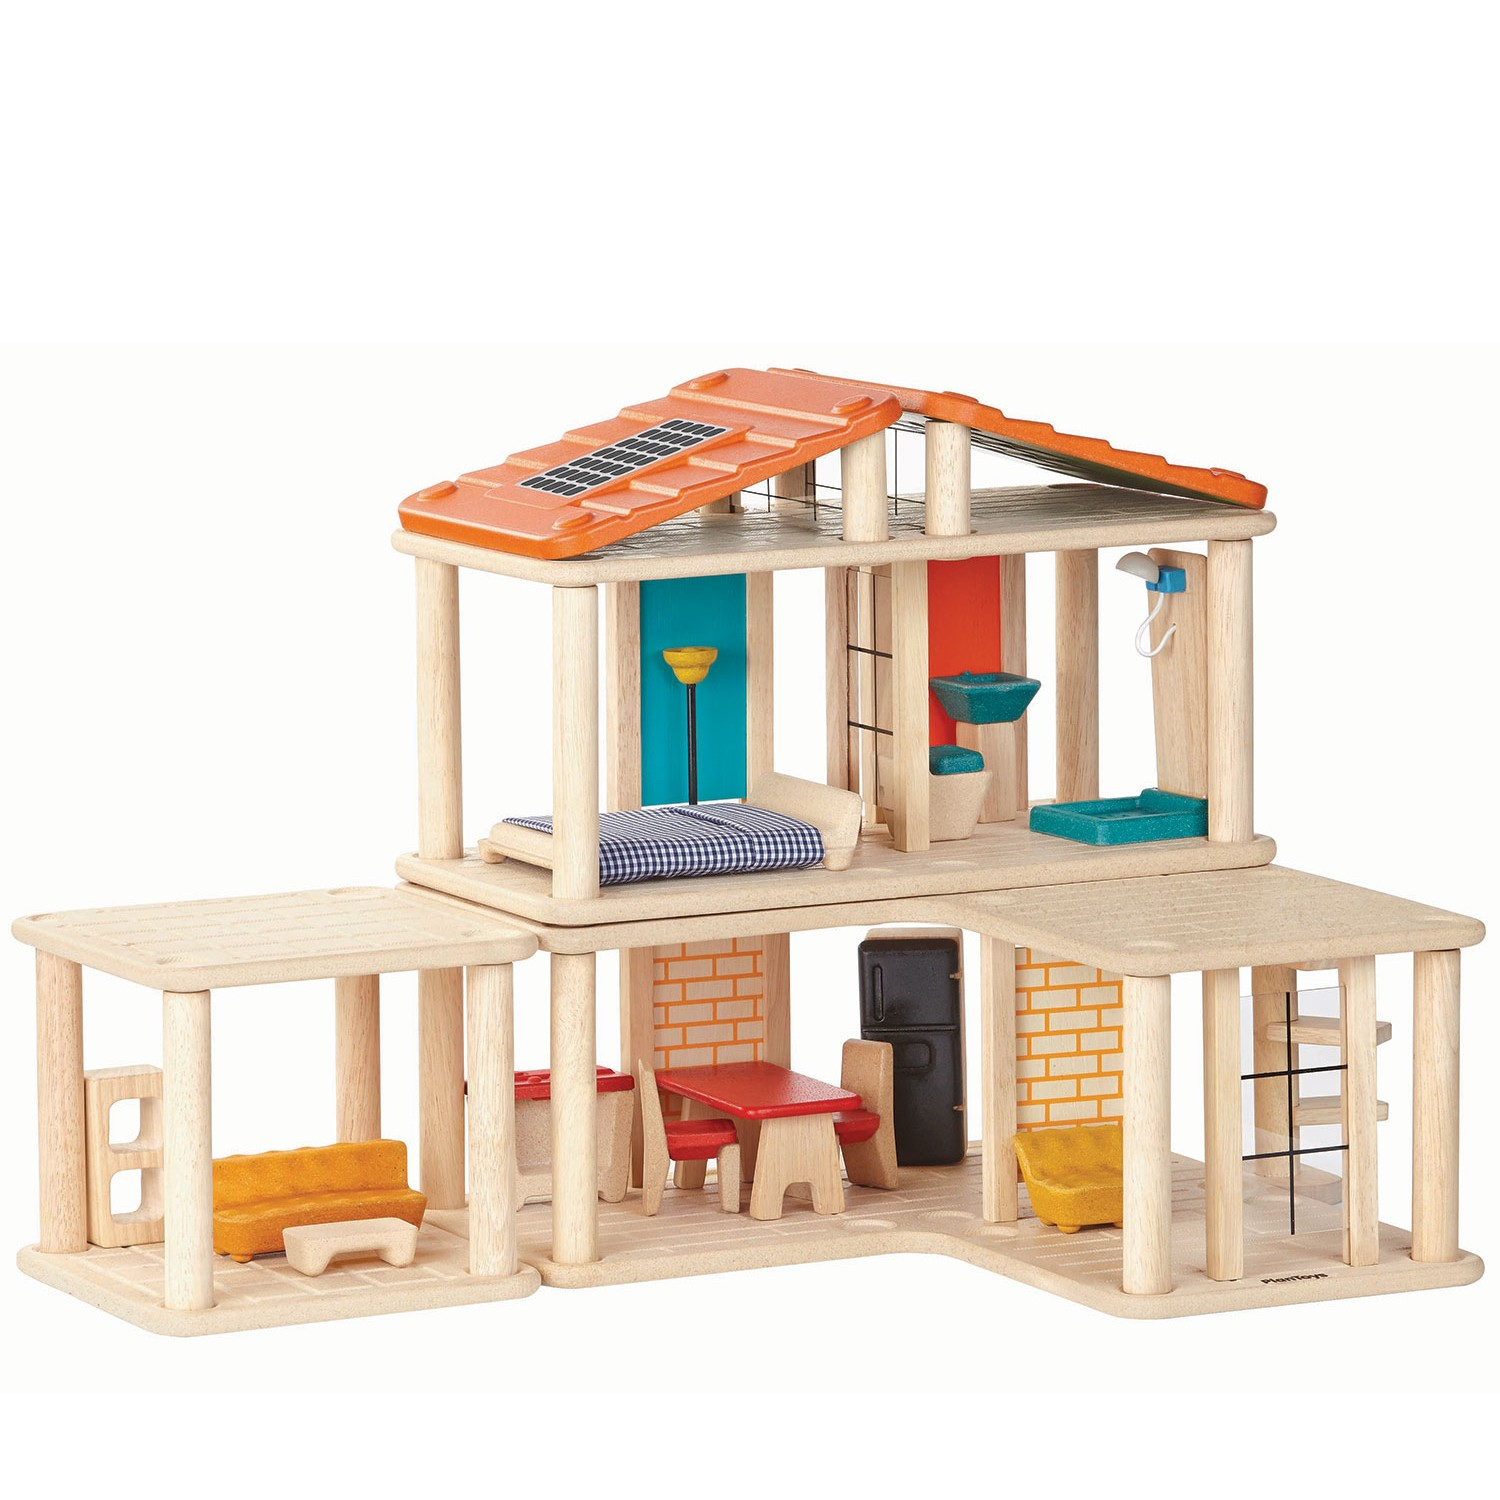 Plan toys creative play house for Play plan